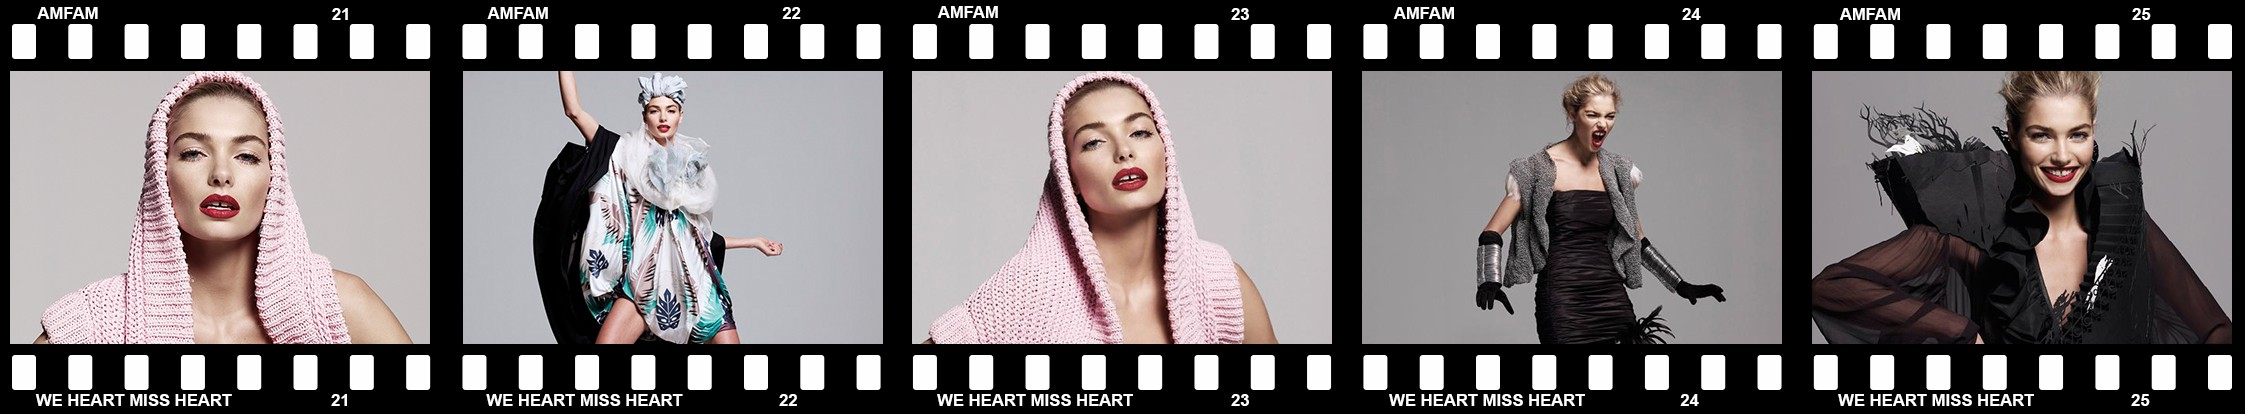 We heart miss heart